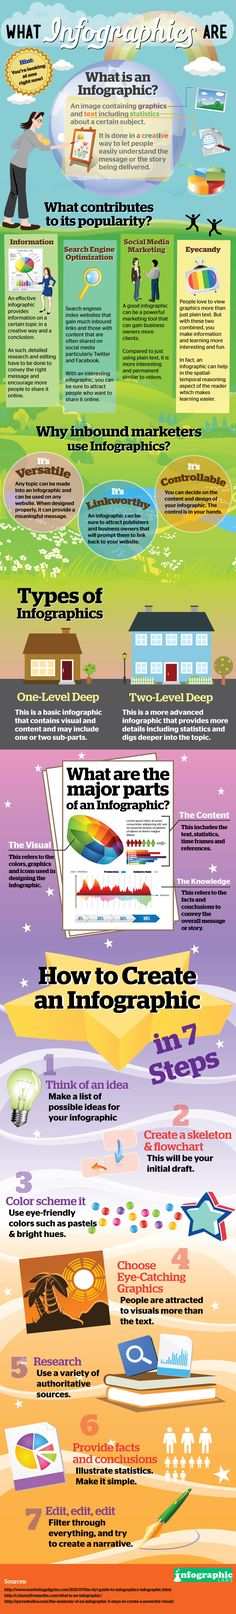 #Infografía sobre como diseñar buenas infografías / what exactly is an infographic and why are they popular?